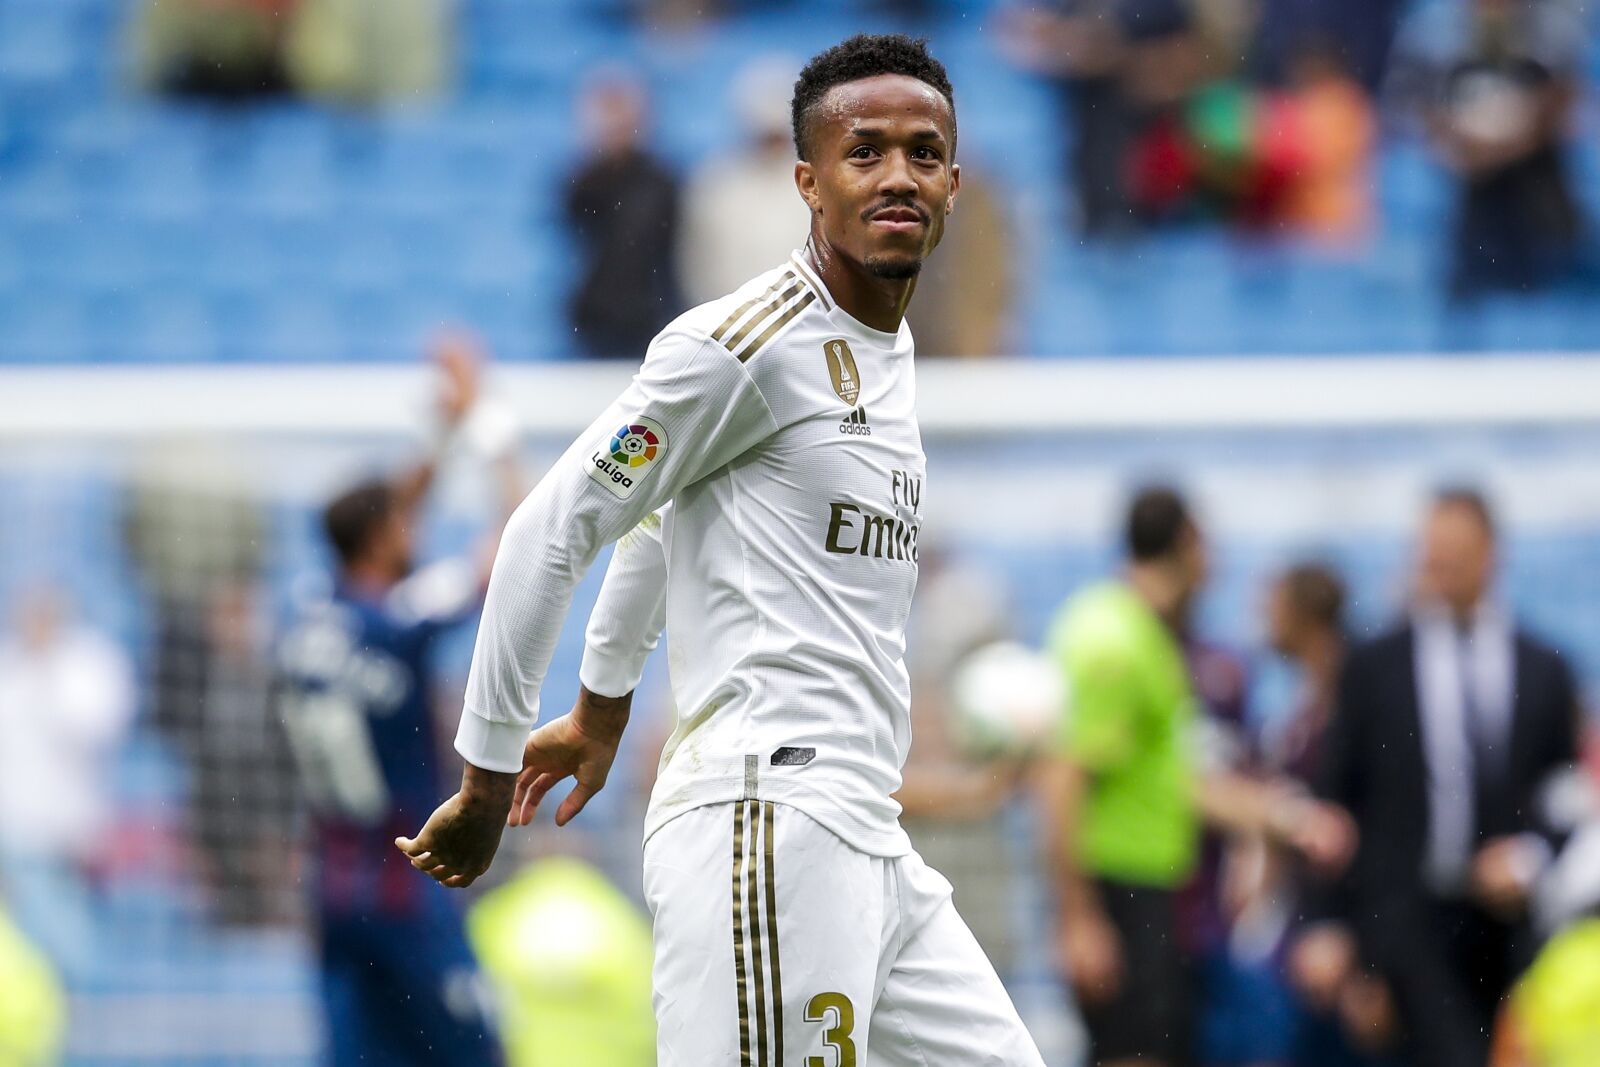 Real Madrid: PSG game a great measuring stick for Eder Militao